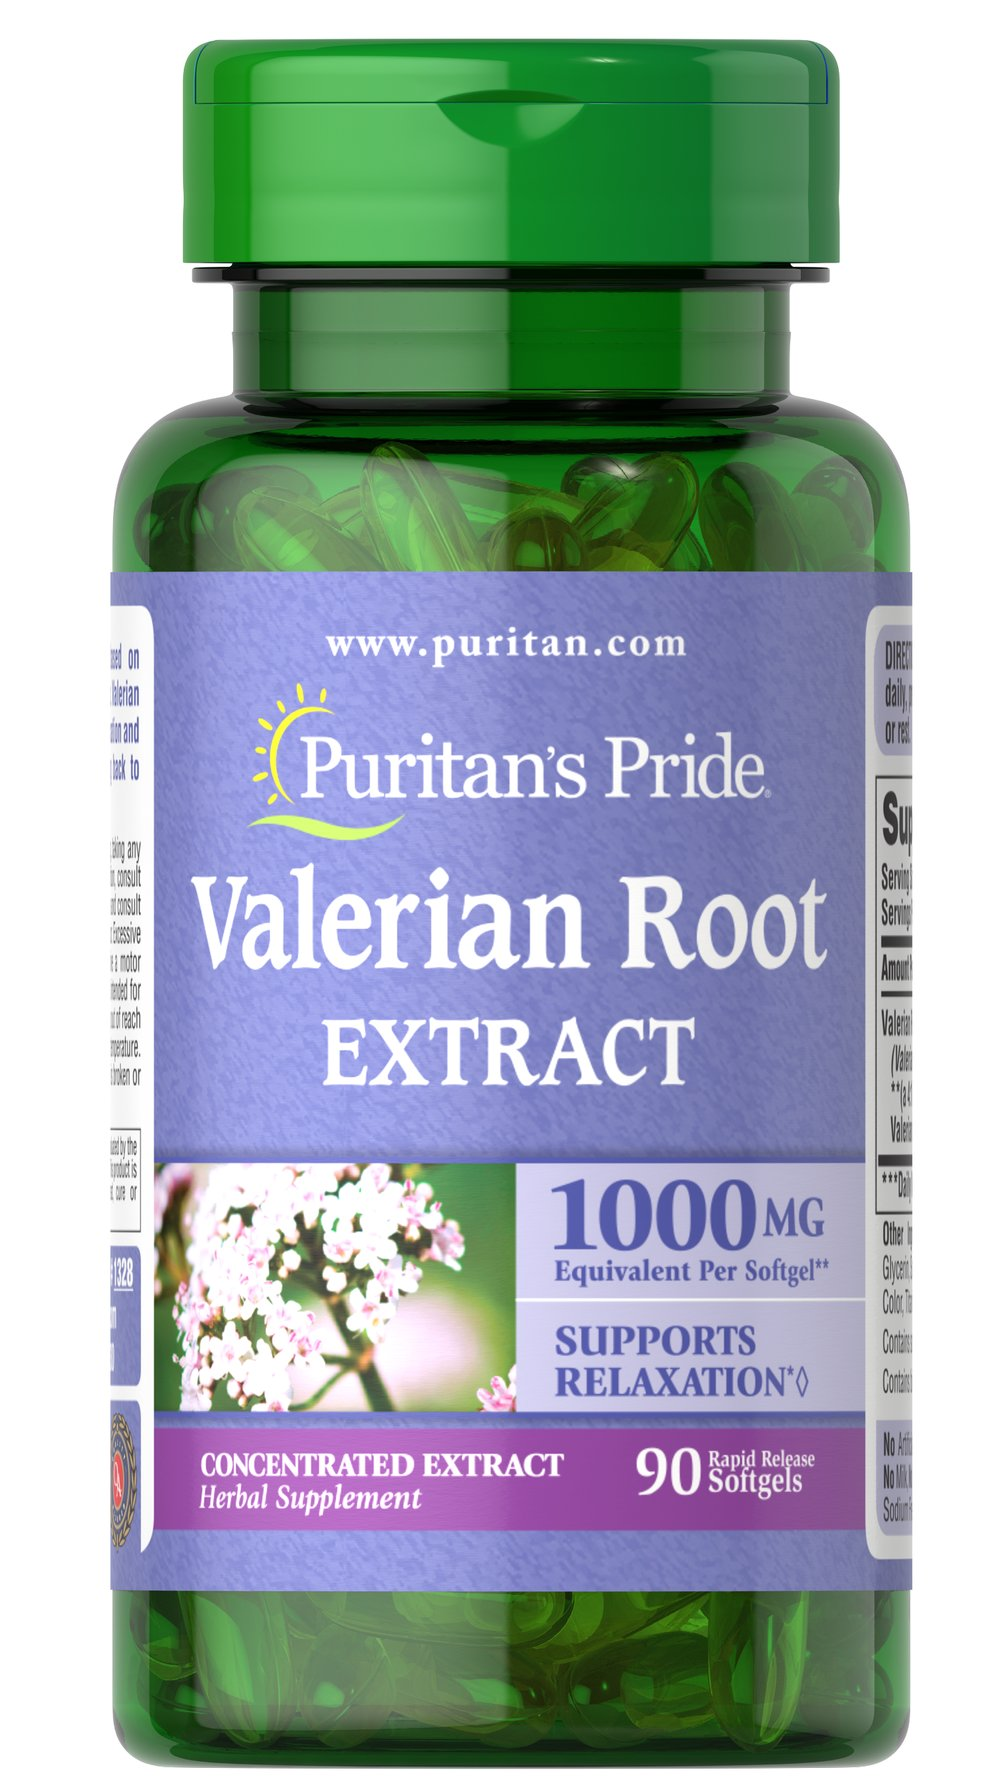 Valerian Root 1000 mg <p>Traditionally Used to Support Relaxation** <br /><br />Valerian works in harmony with your natural cycle and has been traditionally used to help promote relaxation, so you can leave your busy day behind and get the tranquil rest you deserve.**</p><p></p><p></p> 90 Softgels 1000 mg $14.99